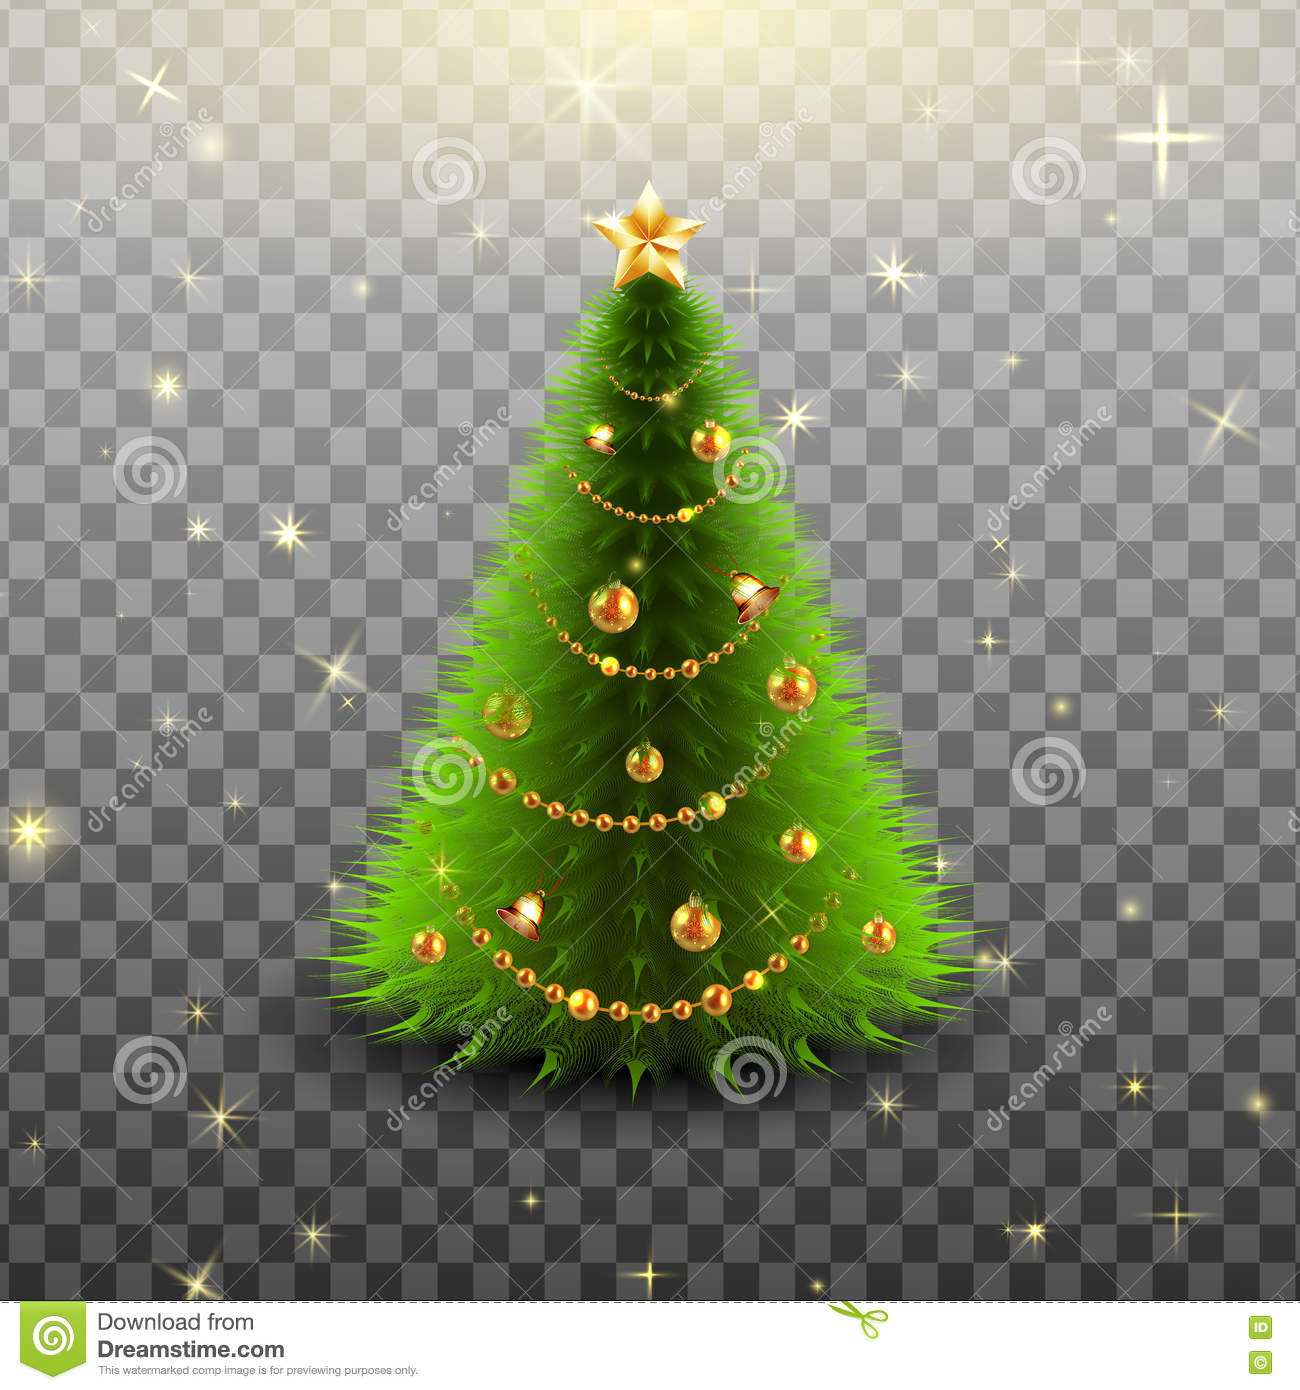 christmas tree on transparent background vector illustration - Christmas Tree Transparent